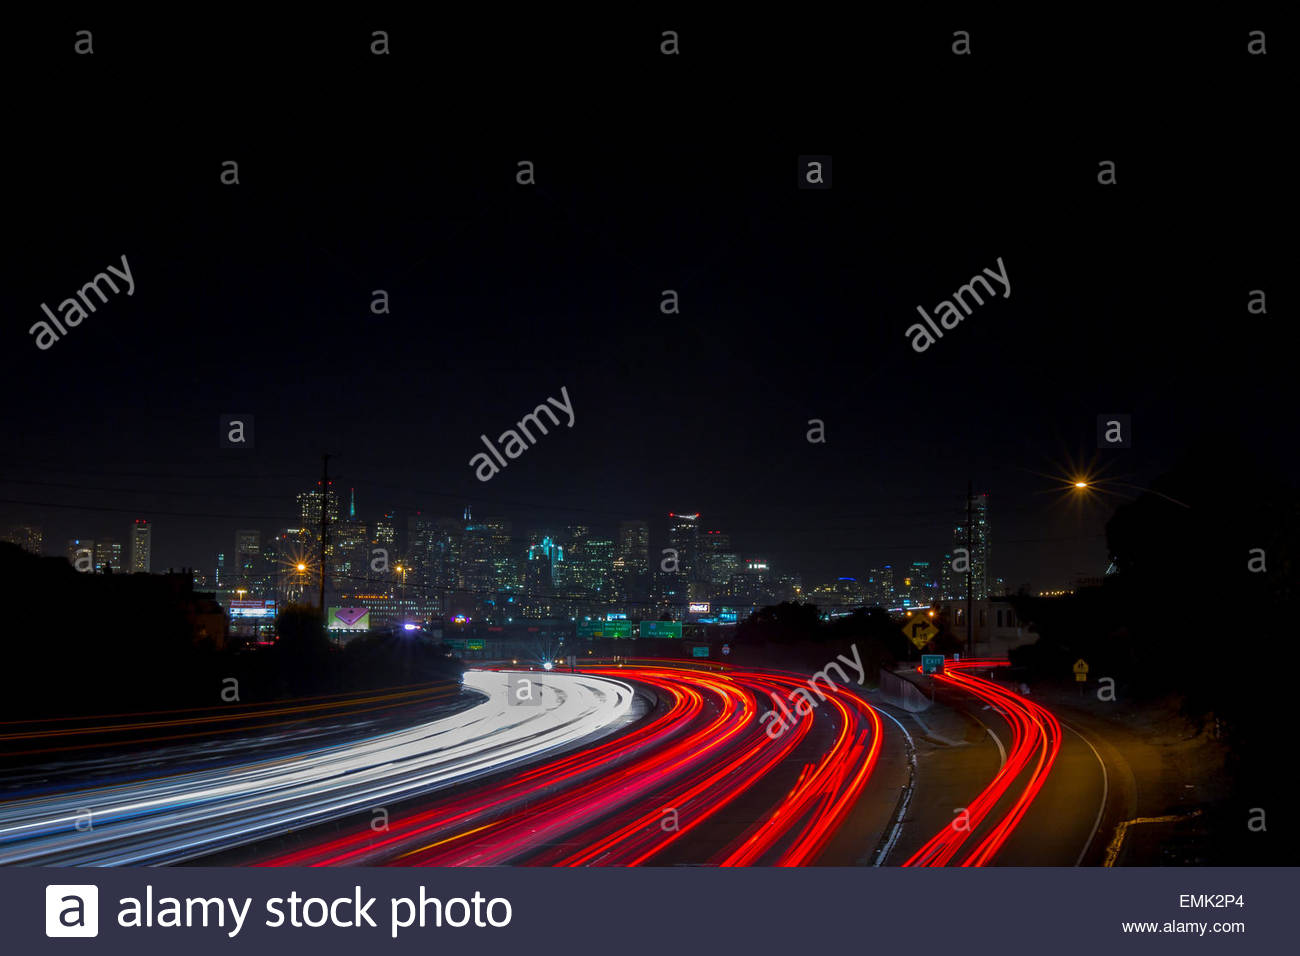 White and red light trail along urban road - Stock Image